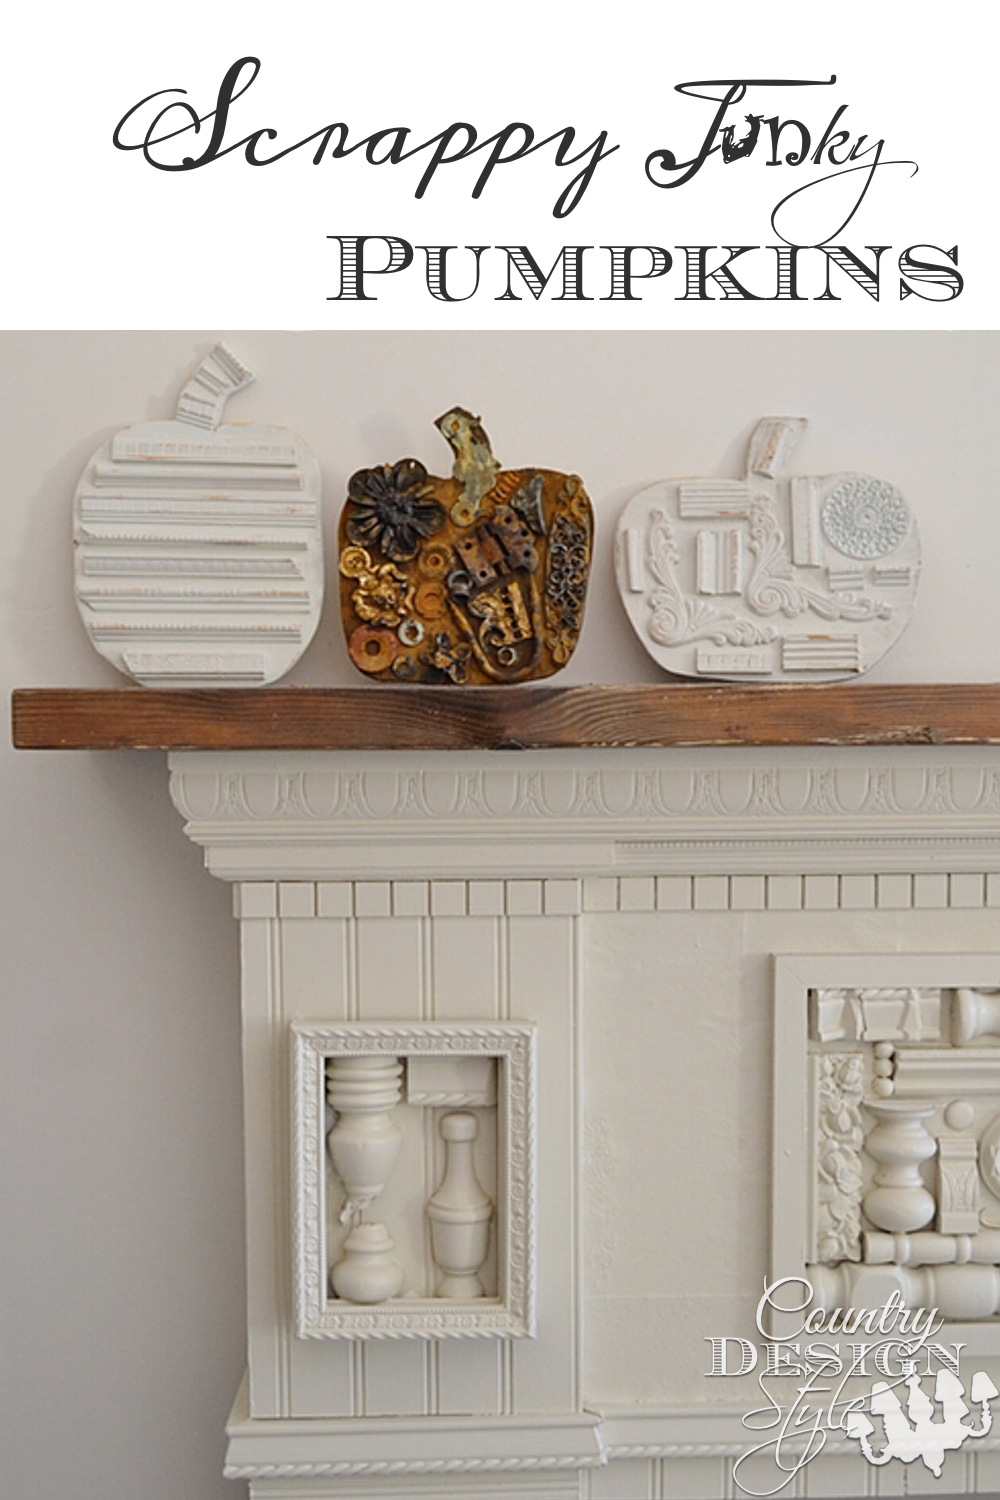 Scrappy Junky Pumpkins made from plywood cutouts and junk sitting on DIY fireplace mantel   countrydesignstyle.com